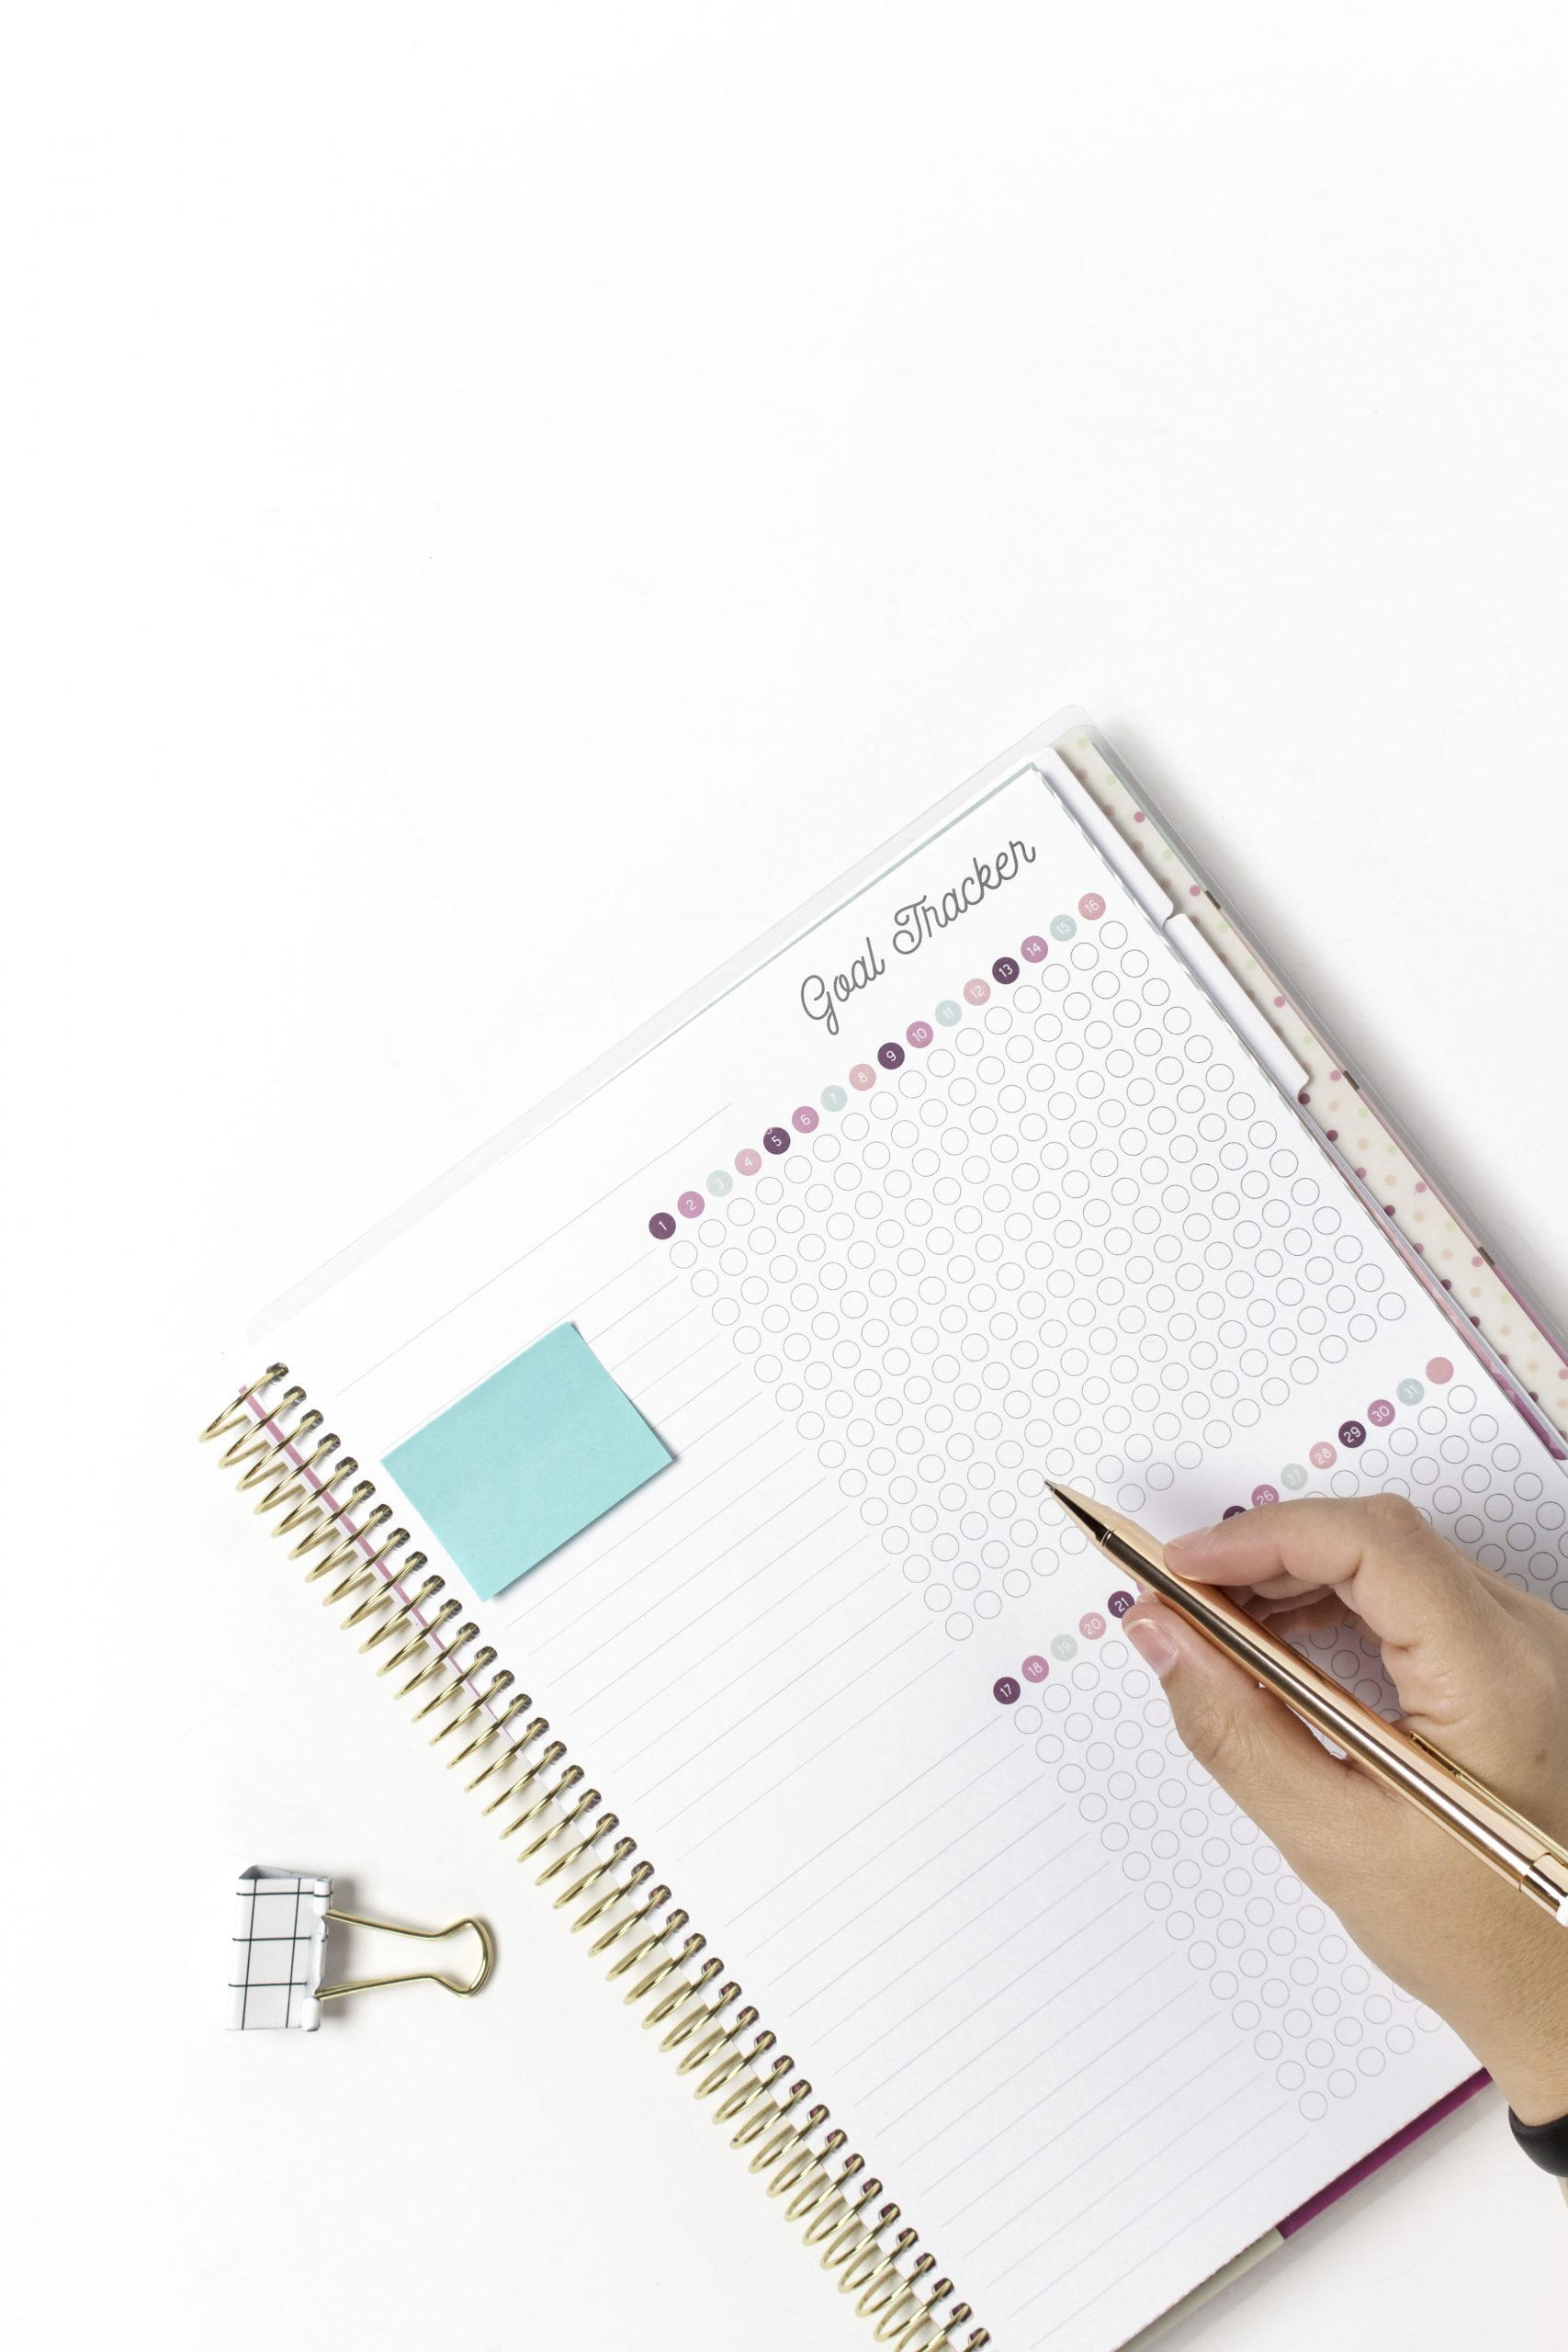 Goal tracker planner with pen